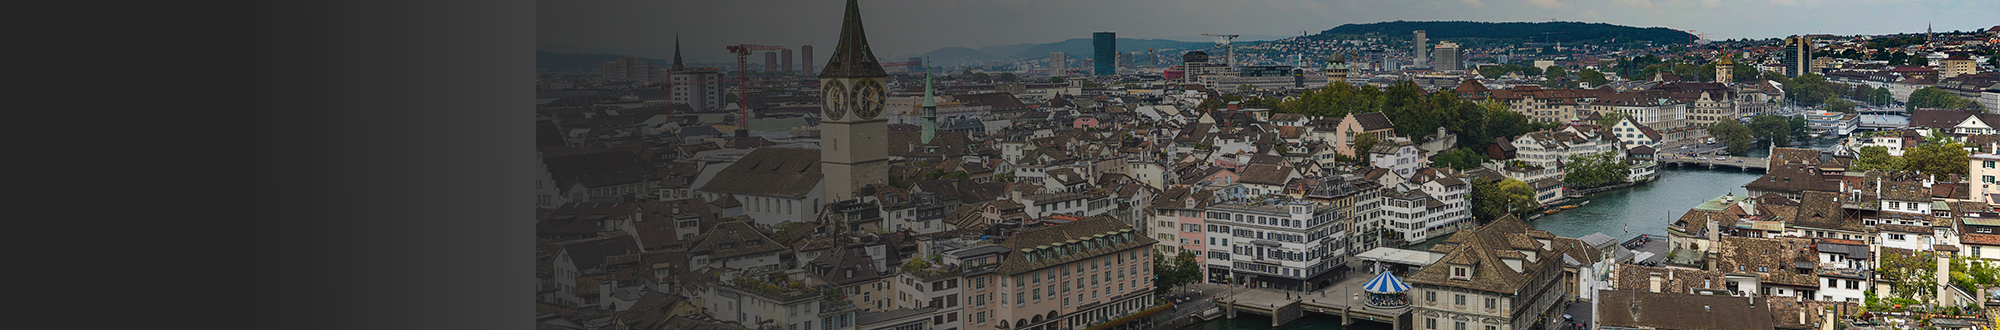 Attend an Information Session in Zurich